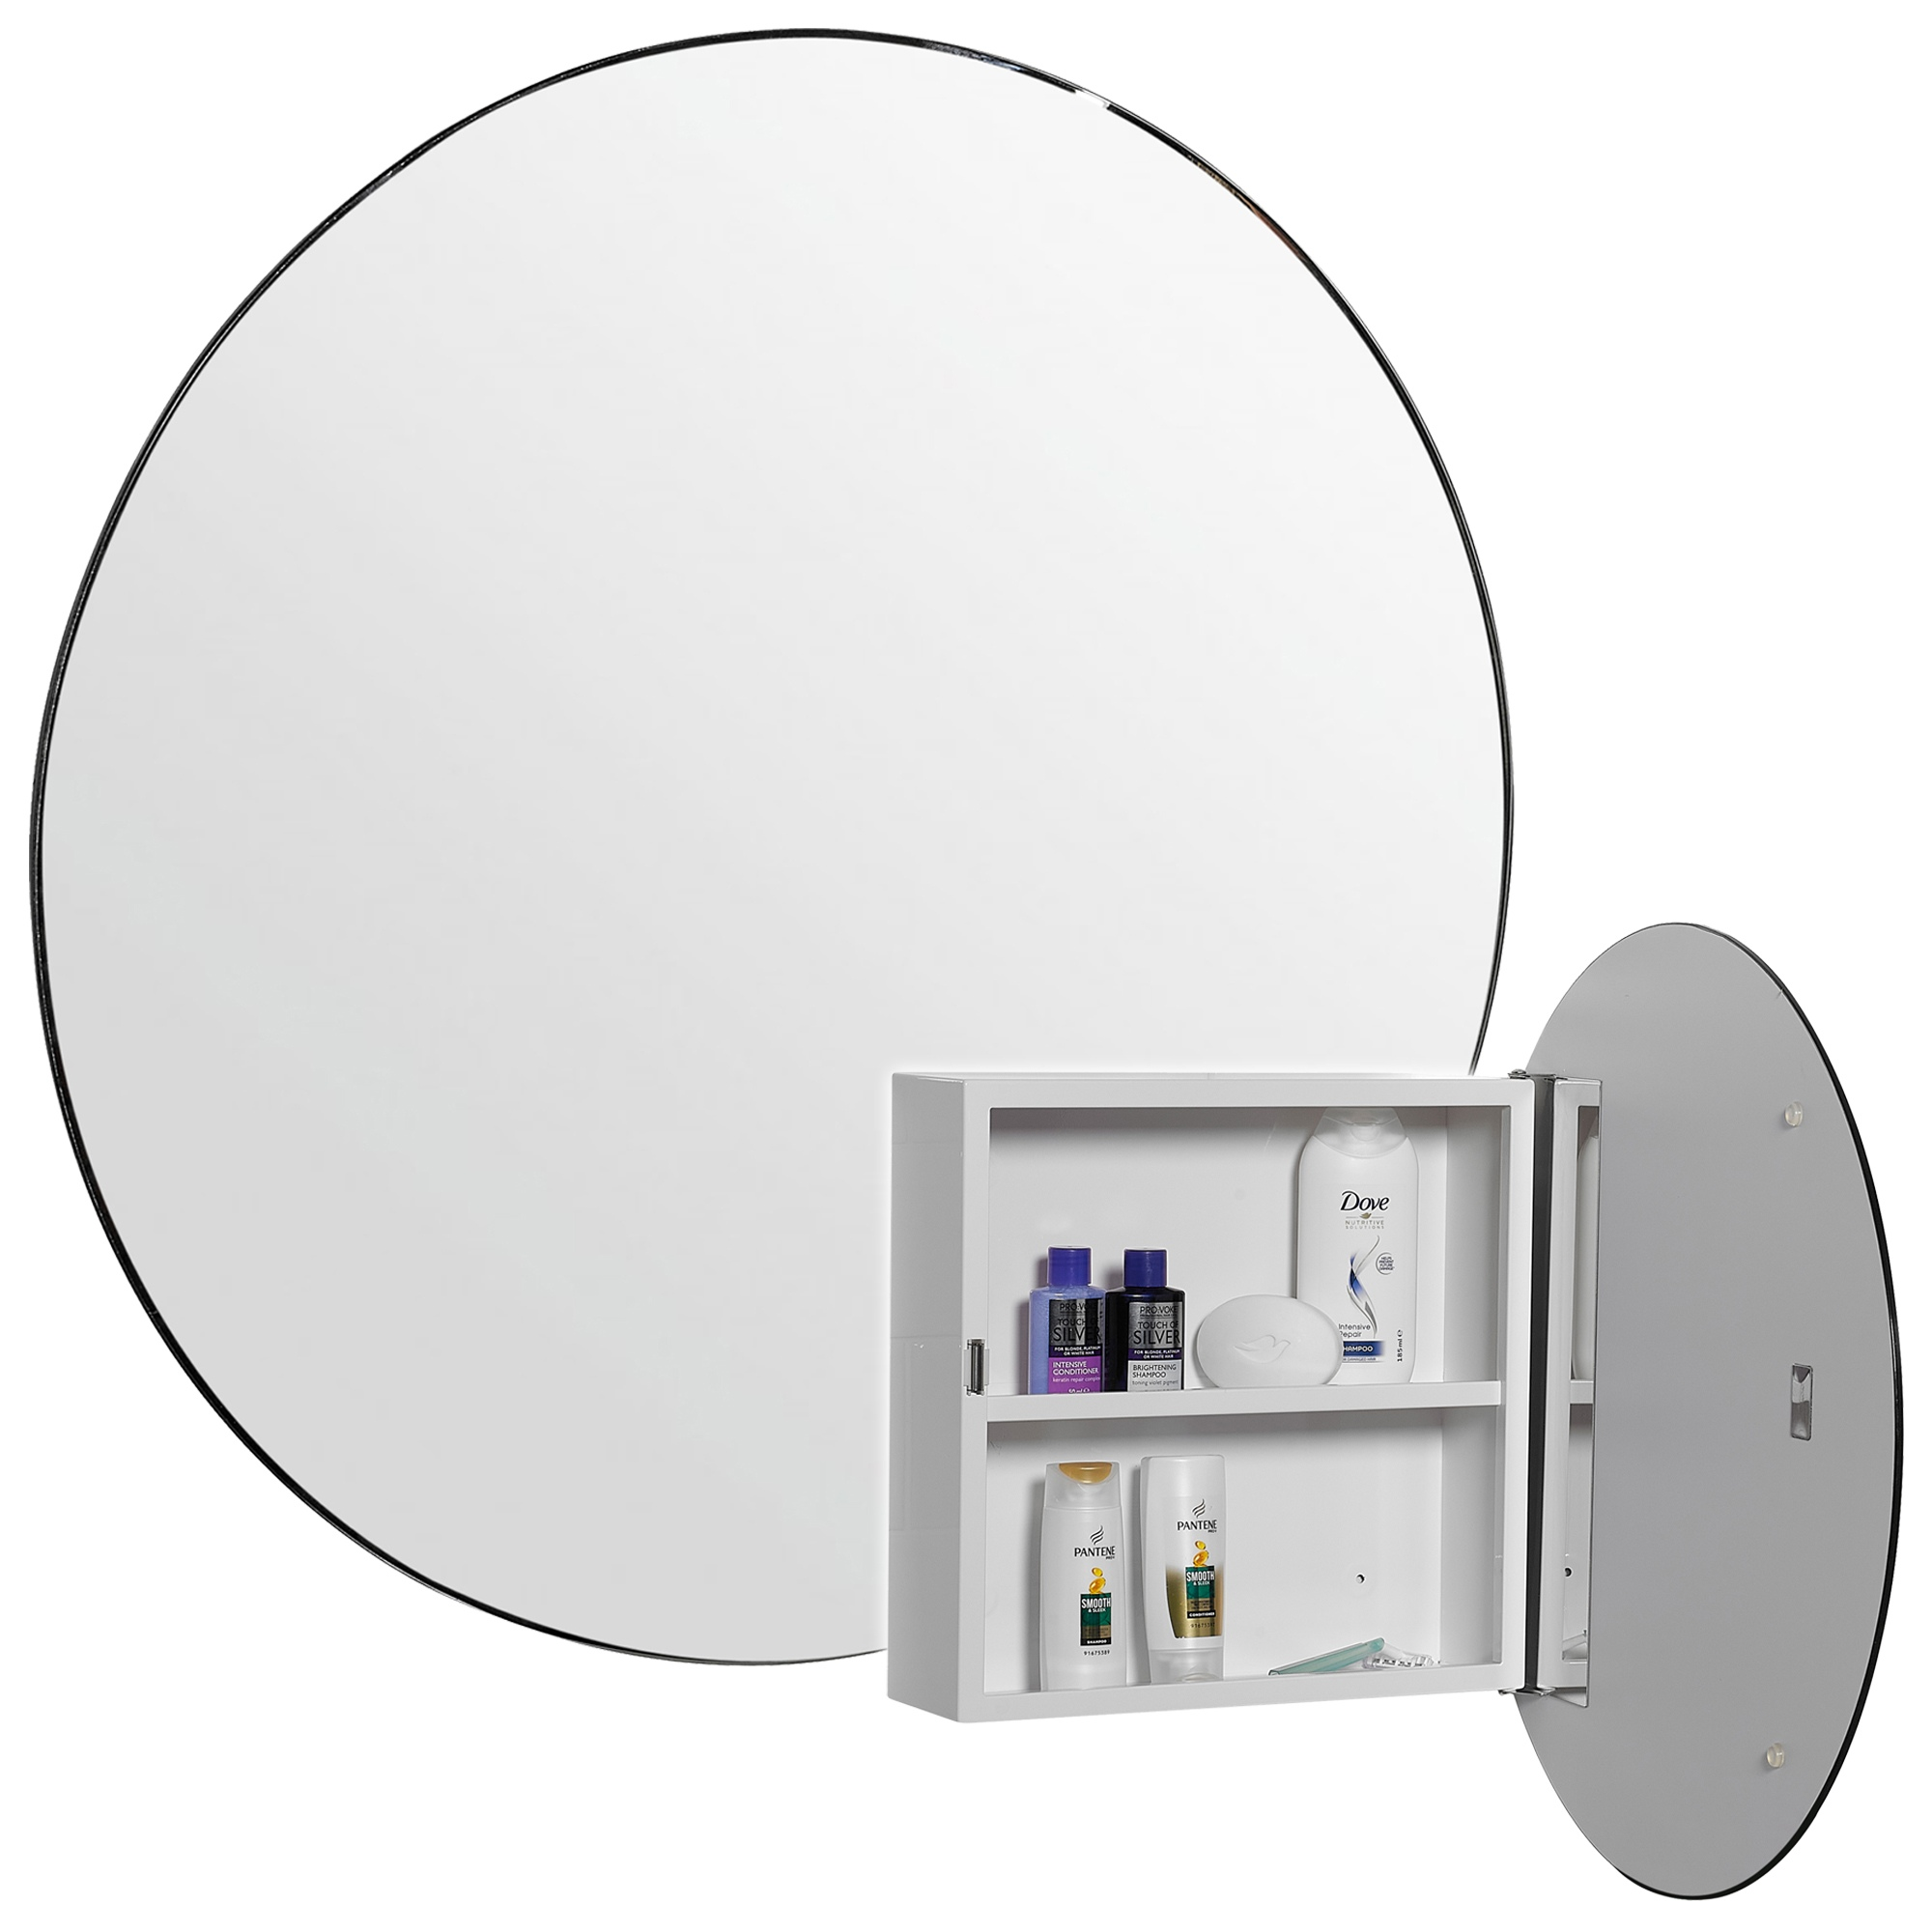 Round Steel Bathroom Mirror Cabinet Wall Mounted Storage 1 Shelf Modern Design 5012044093332 Ebay